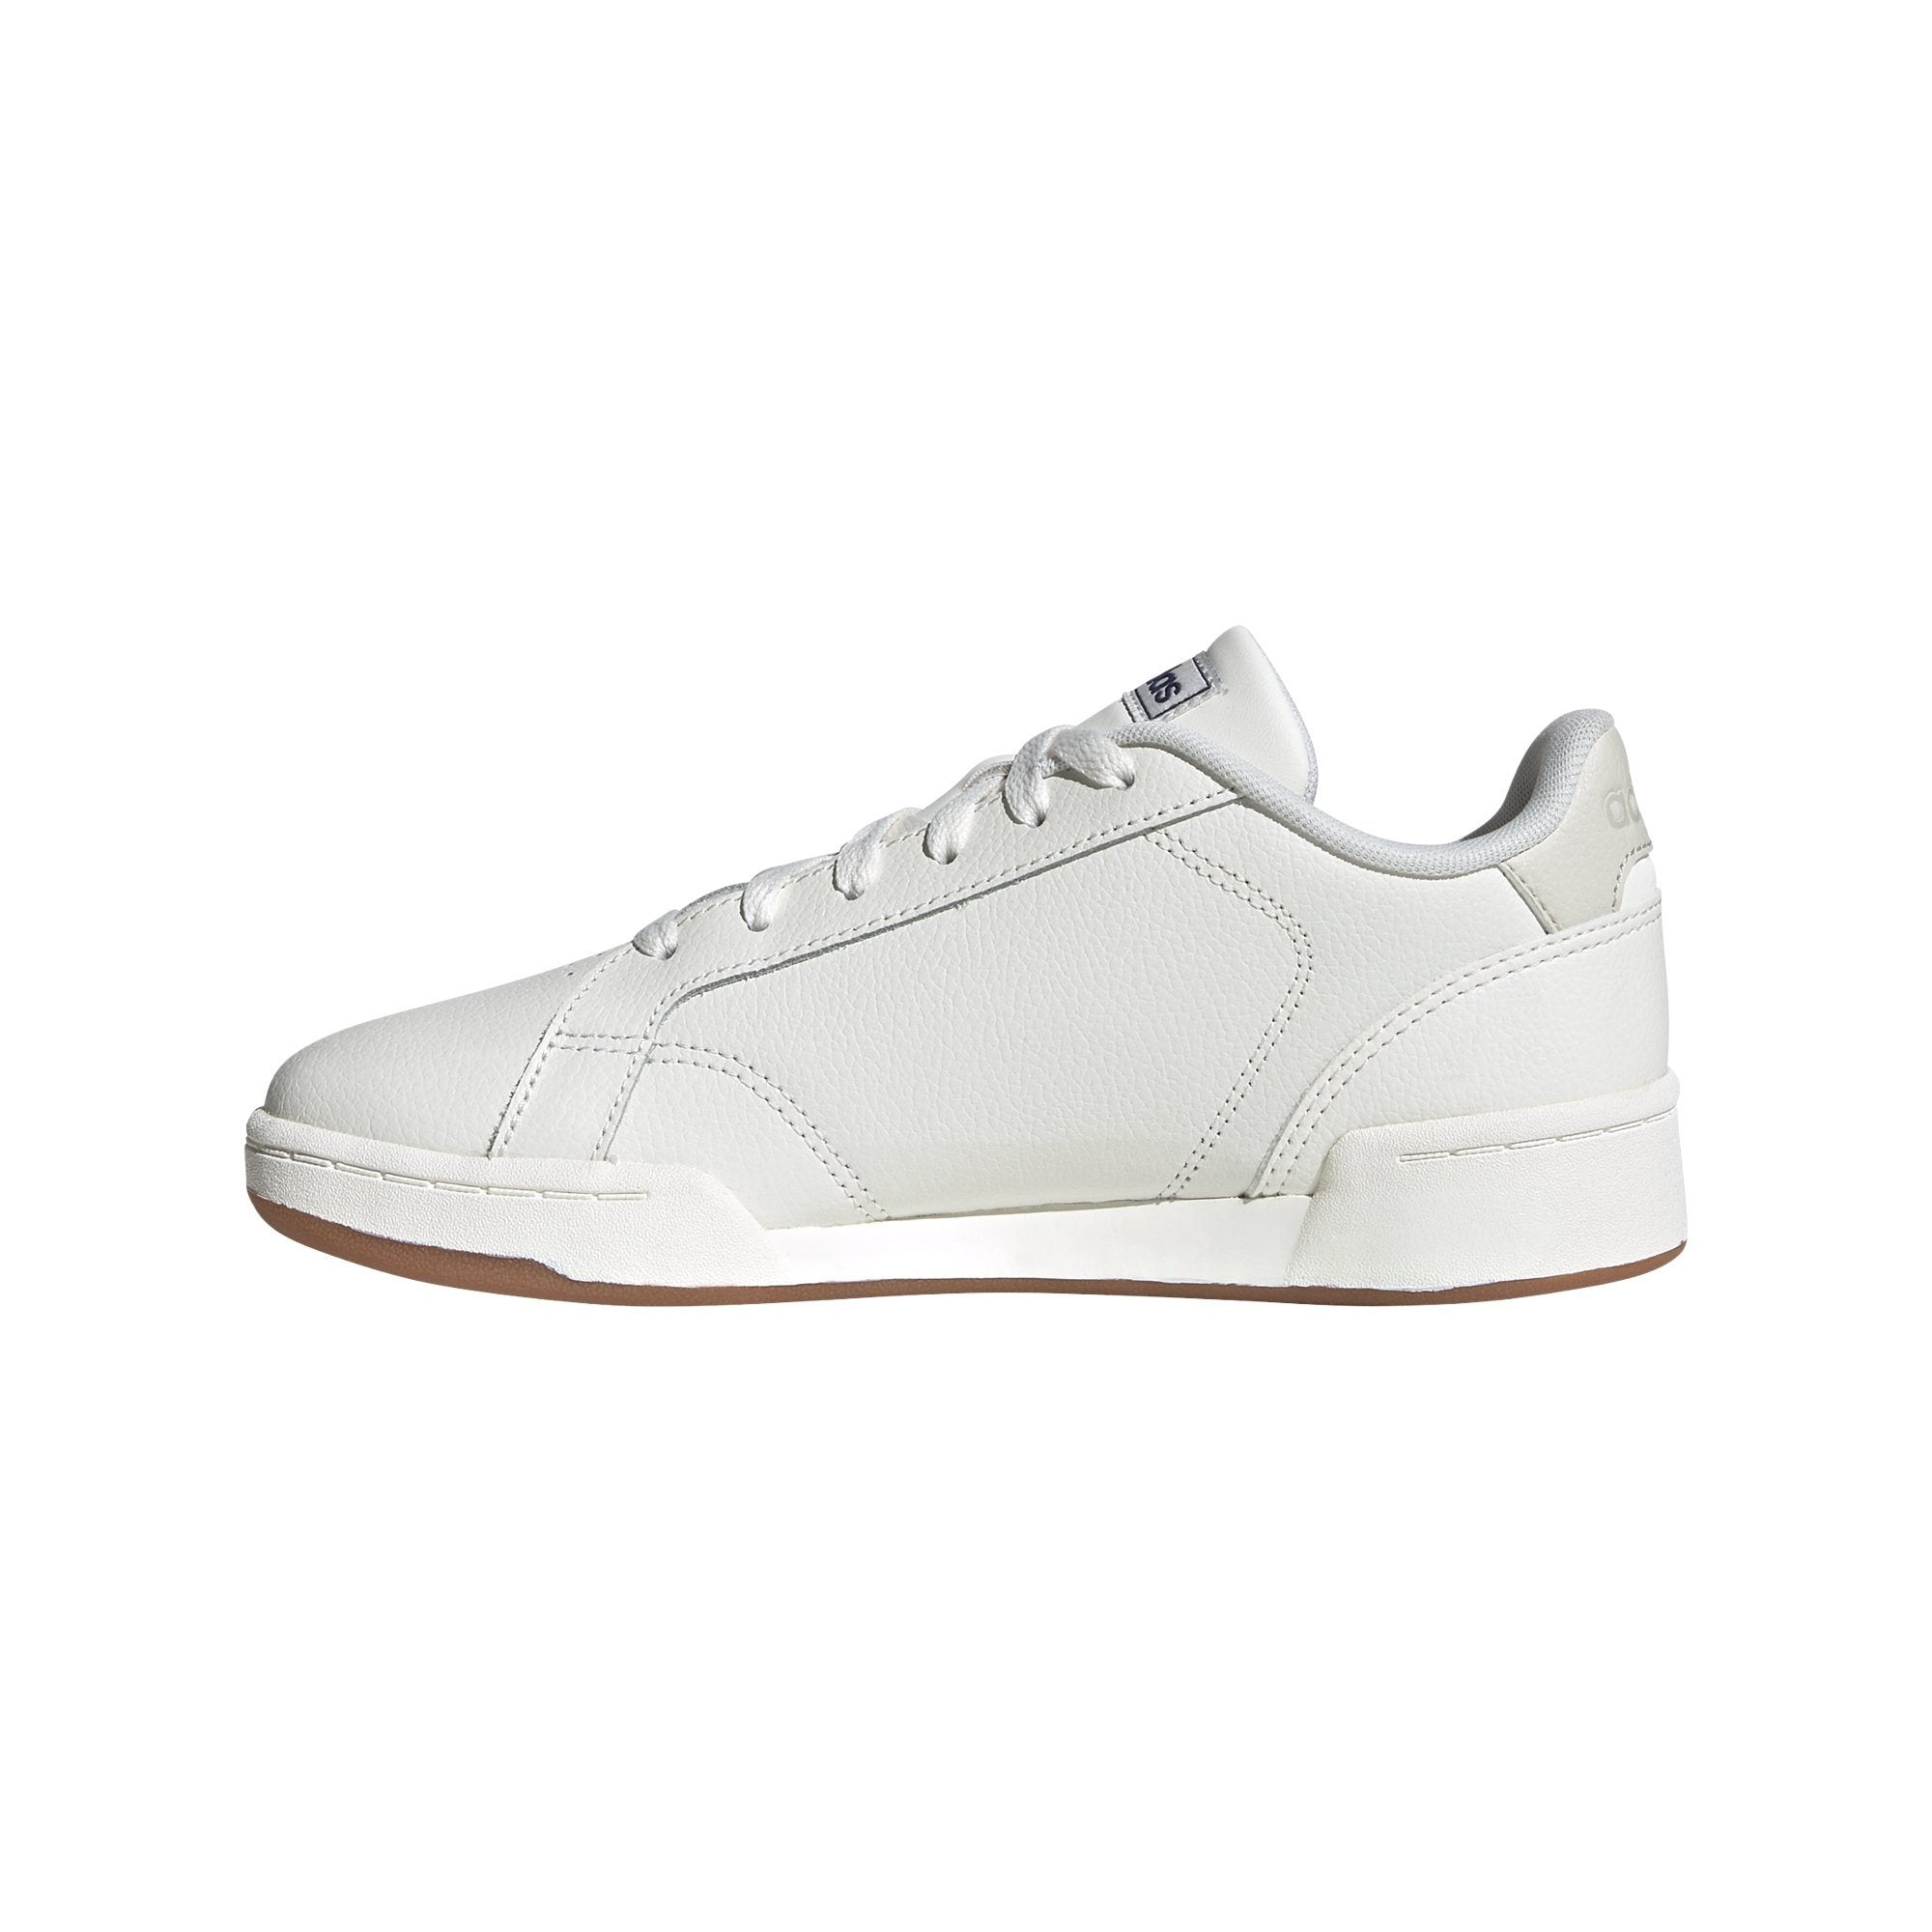 Adidas Roguera Junior Shoes - cloud white/cloud white/tech indigo